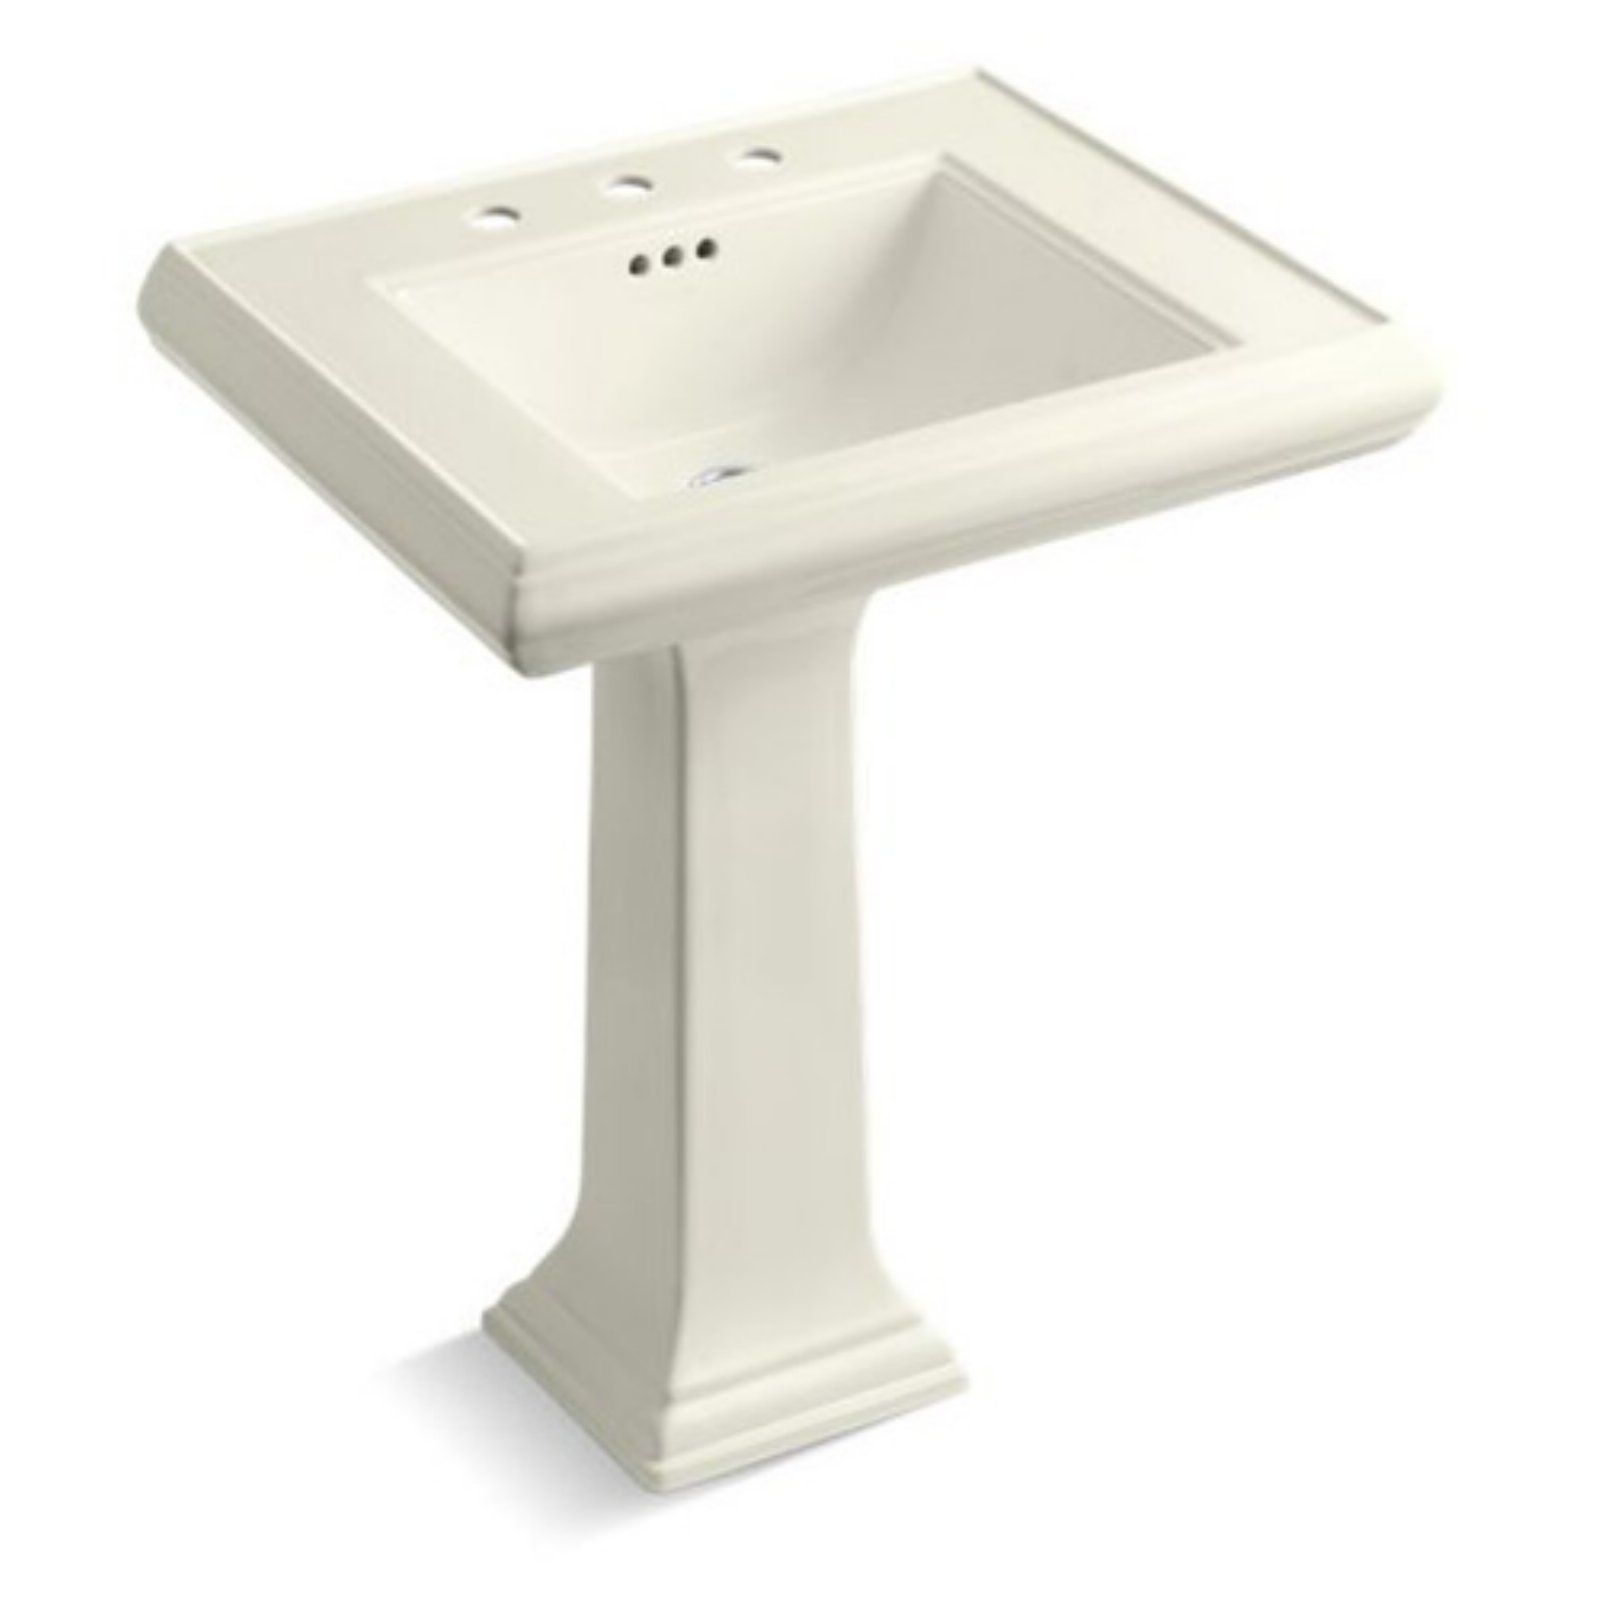 Kohler Memoirs Koh2258 Classic 27 In Pedestal Bathroom Sink